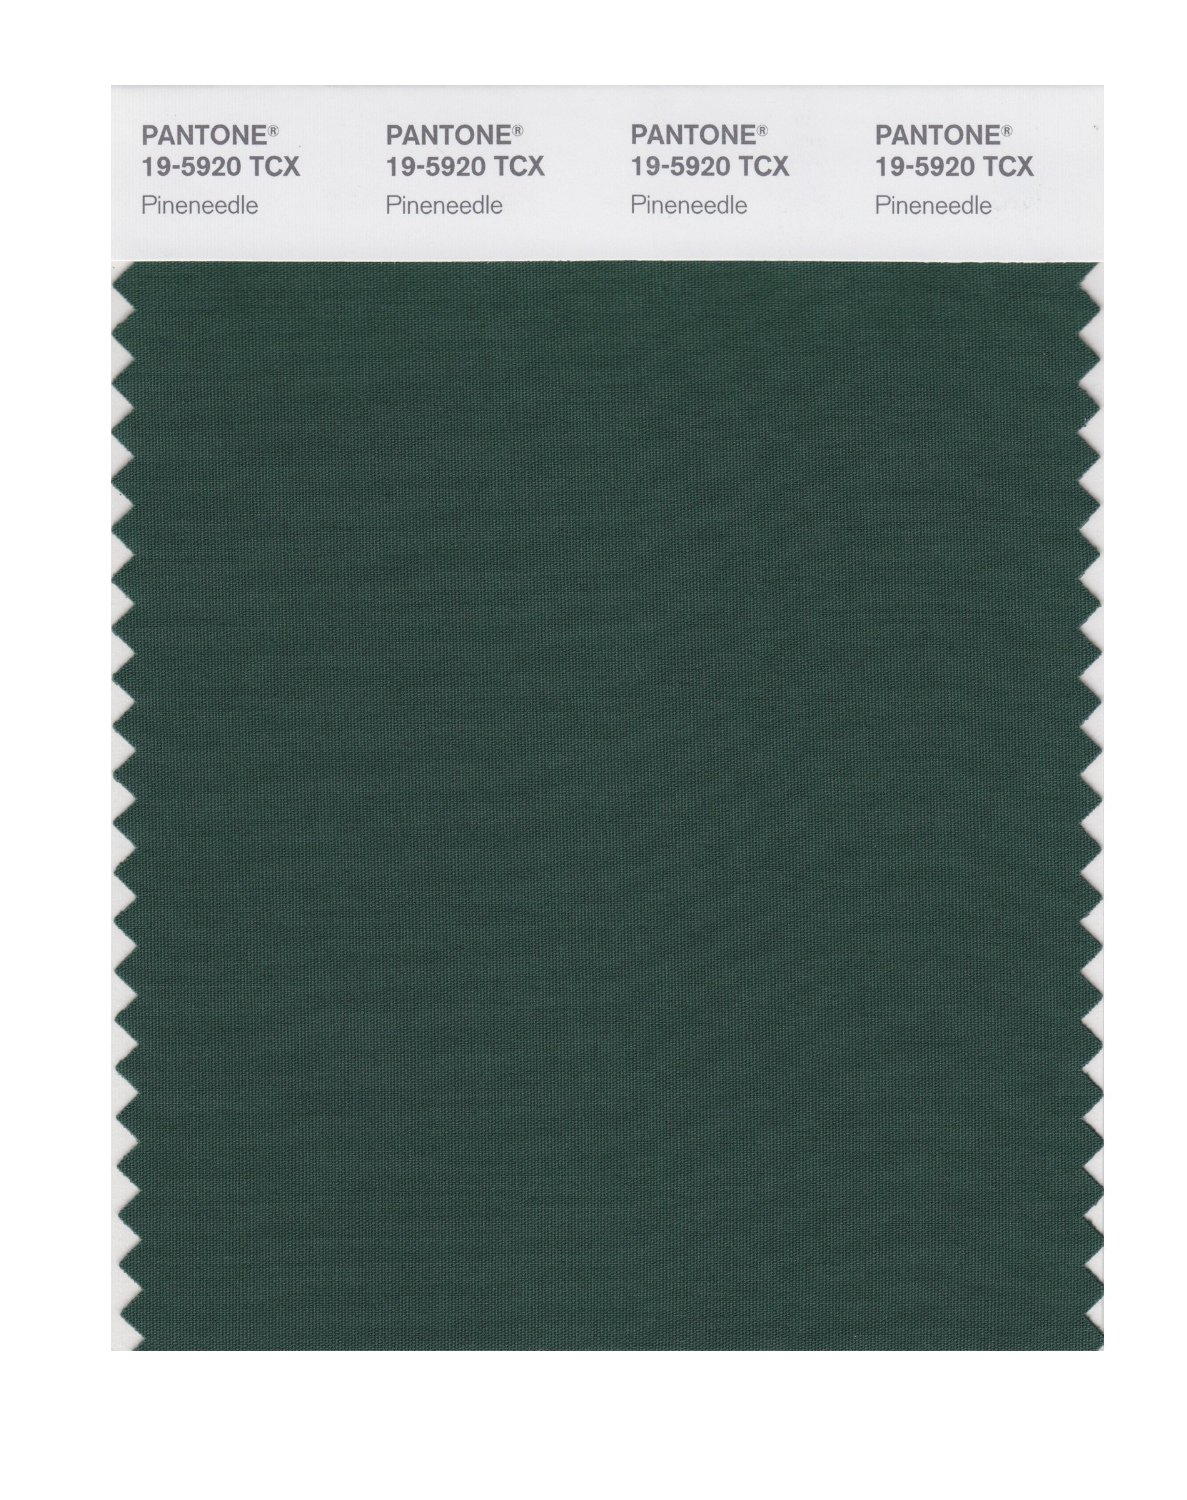 Pantone Smart Swatch 19-5920 Pineneedle